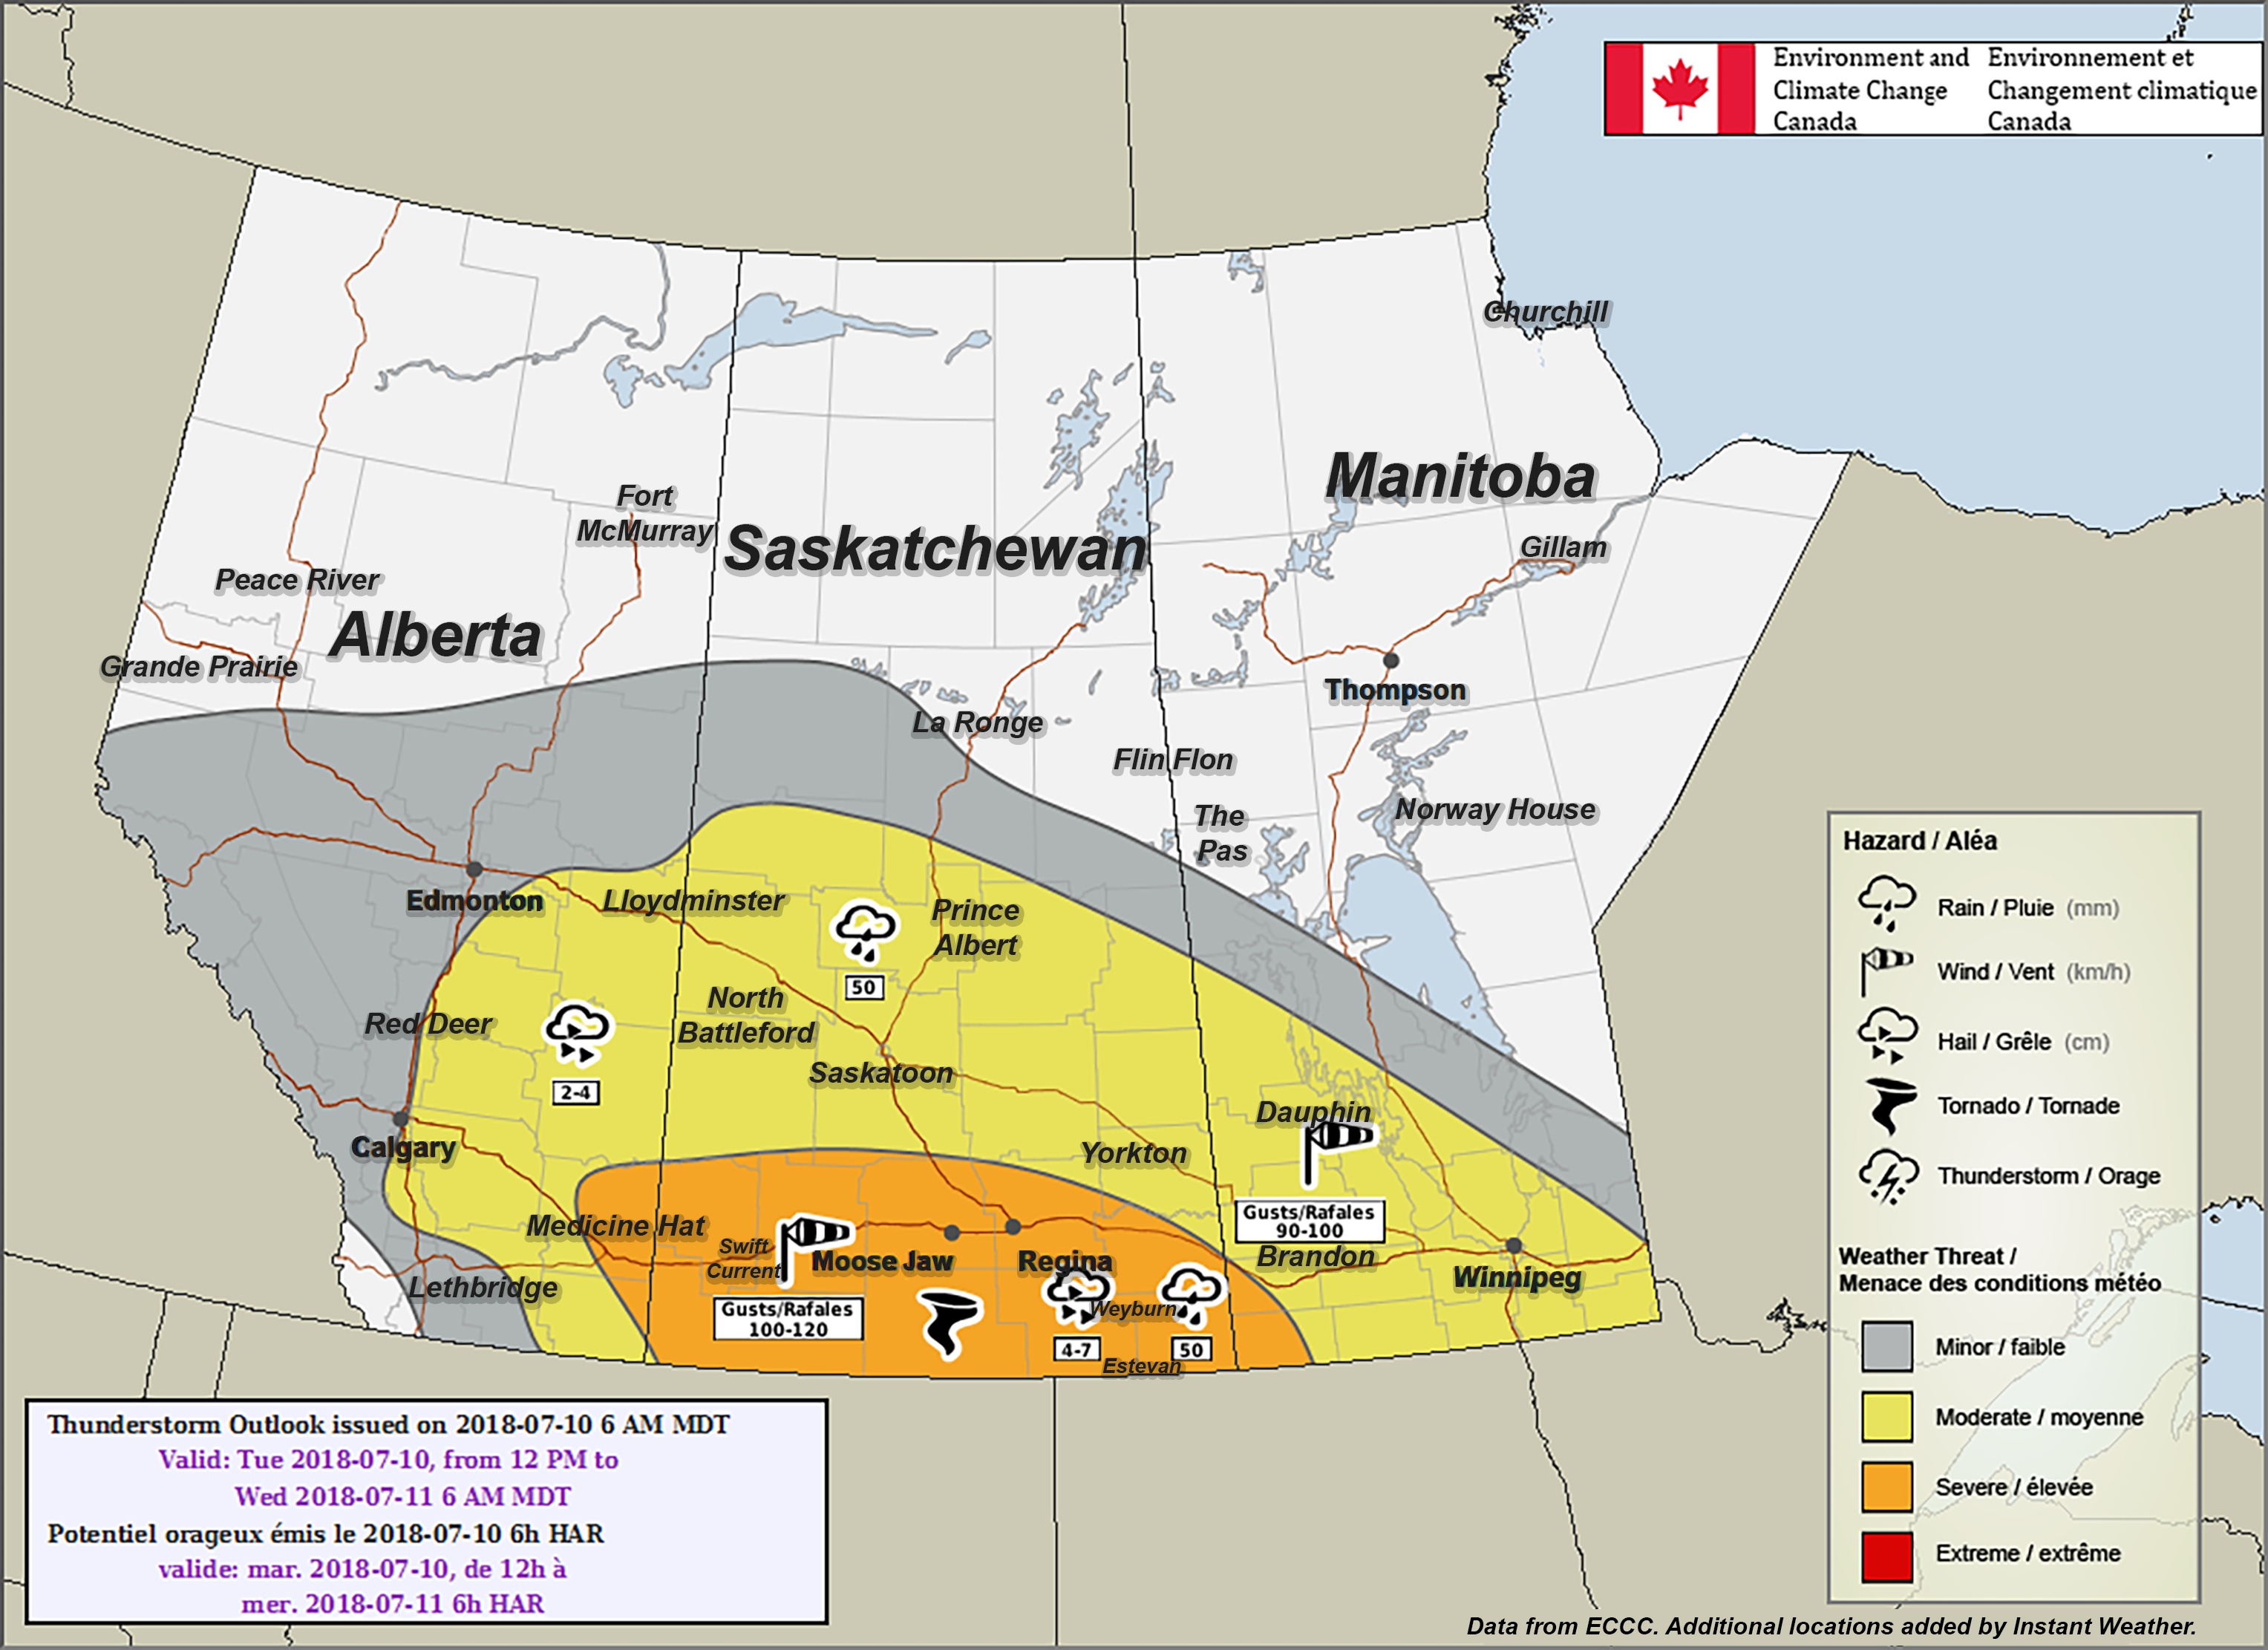 Calgary, Medicine Hat, Red Deer & Lloydminster Included in ... on climate map of canada, wildfires map canada, world map canada, tourism map canada, weather network canada, weather radar north america, fire map canada, google maps canada, product map of canada, road map of canada, heating degree days map canada, summer weather in canada, weather and climate of canada, energy map canada, natural resource map of canada, political map canada, temperature map canada, europe map canada, weather report canada, plant map canada,